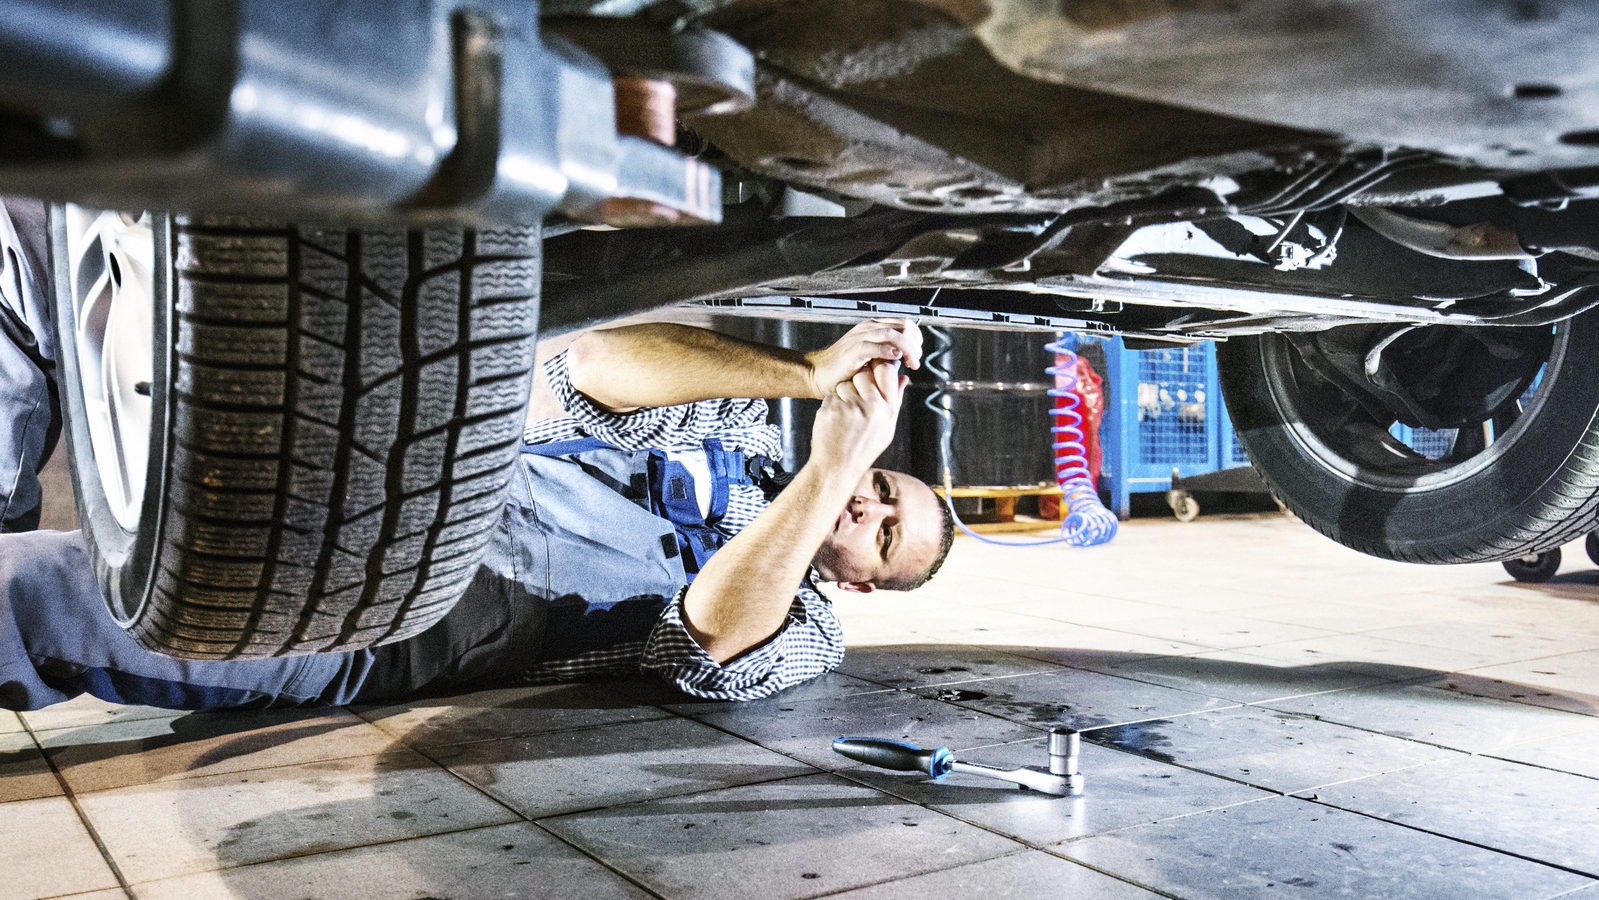 mechanic working on car after an accident